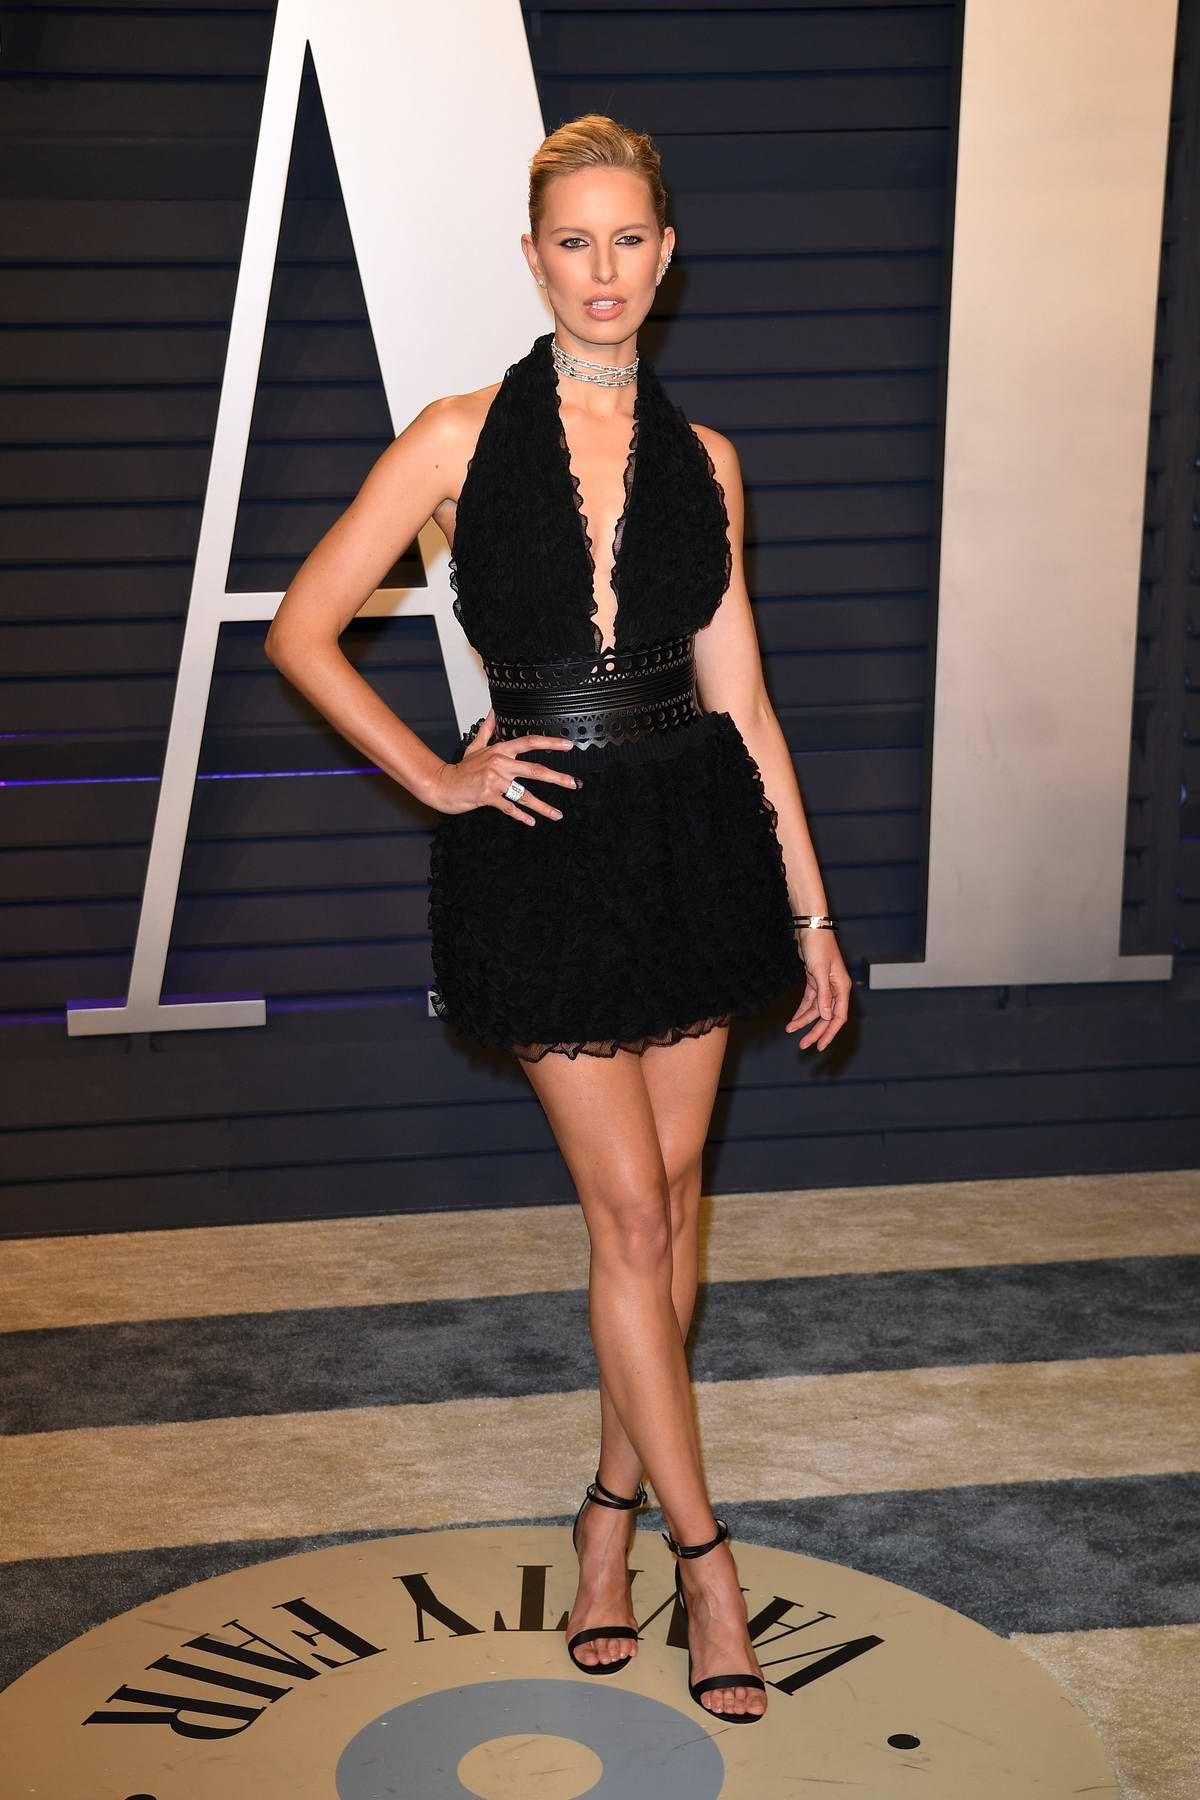 Karolina Kurkova attends the Vanity Fair Oscar Party at Wallis Annenberg Center for the Performing Arts in Beverly Hills, California